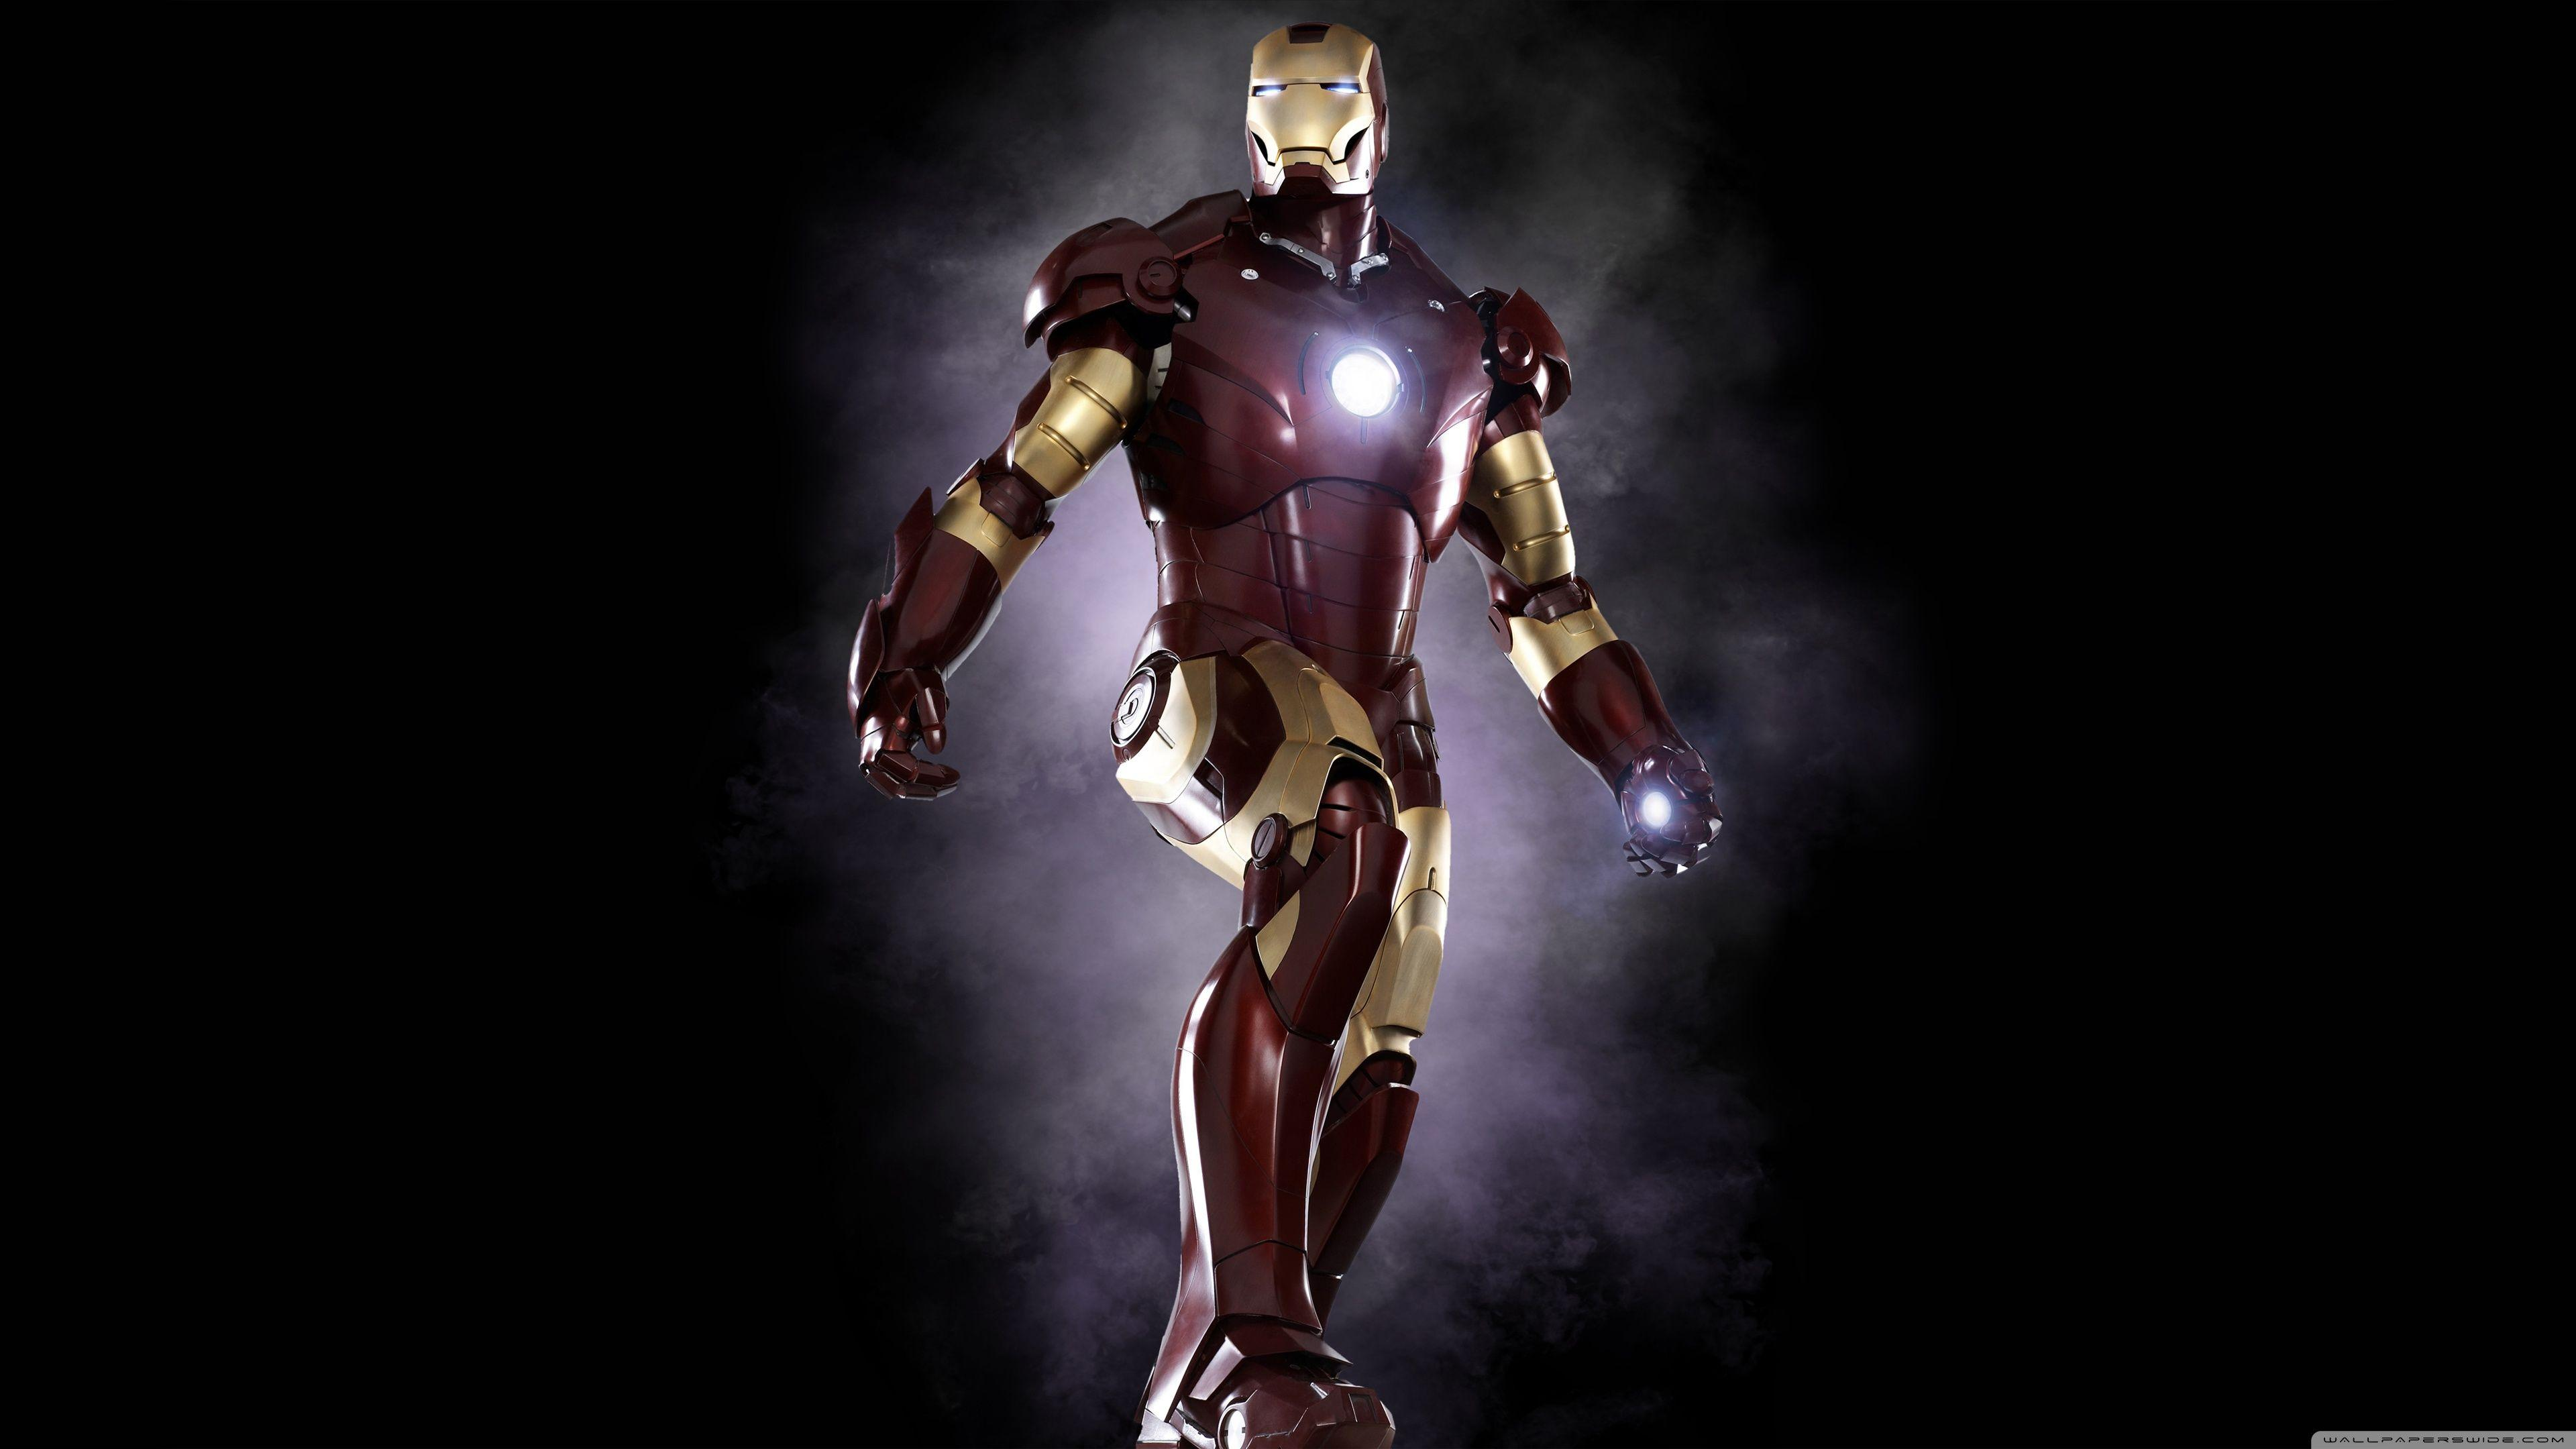 Hd Wallpapers Of Iron Man Wallpaper Cave